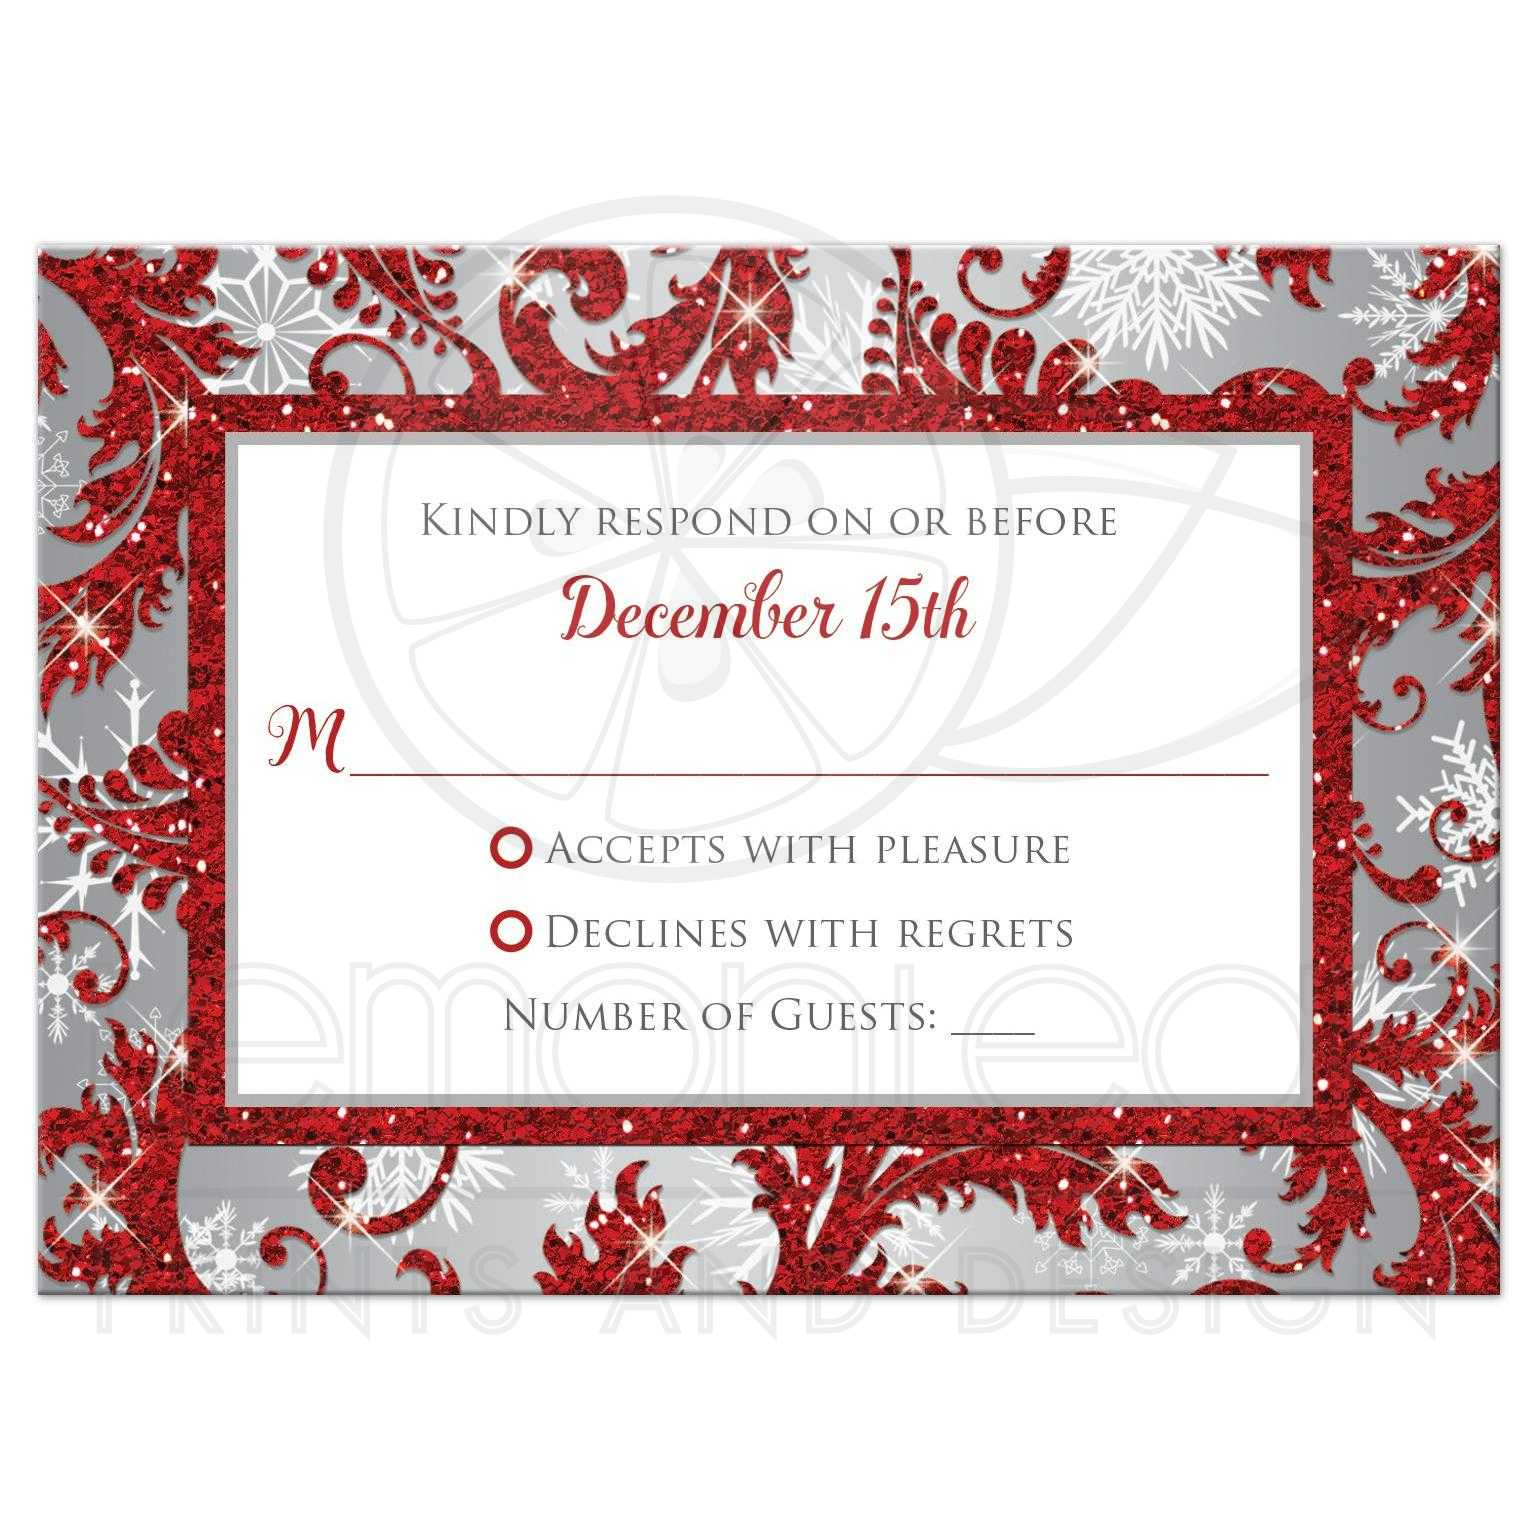 Wedding Reponse Card | Red Winter Wonderland | Silver, White ...